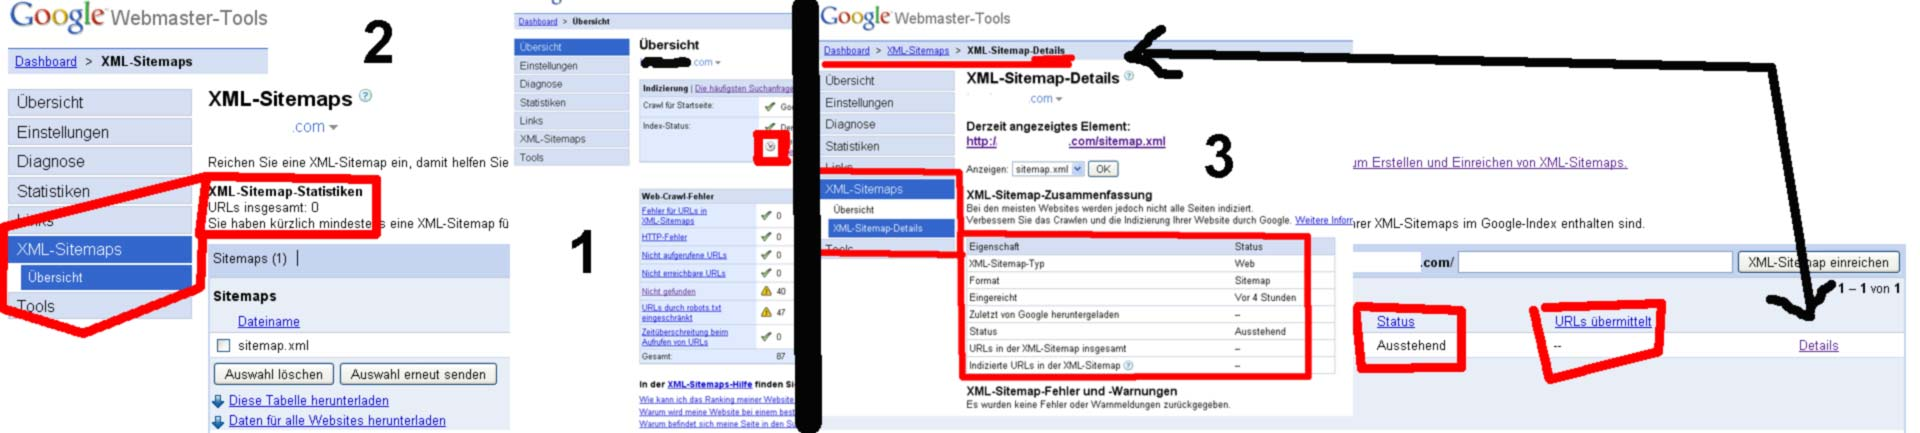 google webmaster tools doesn t get any links 375730 drupal org